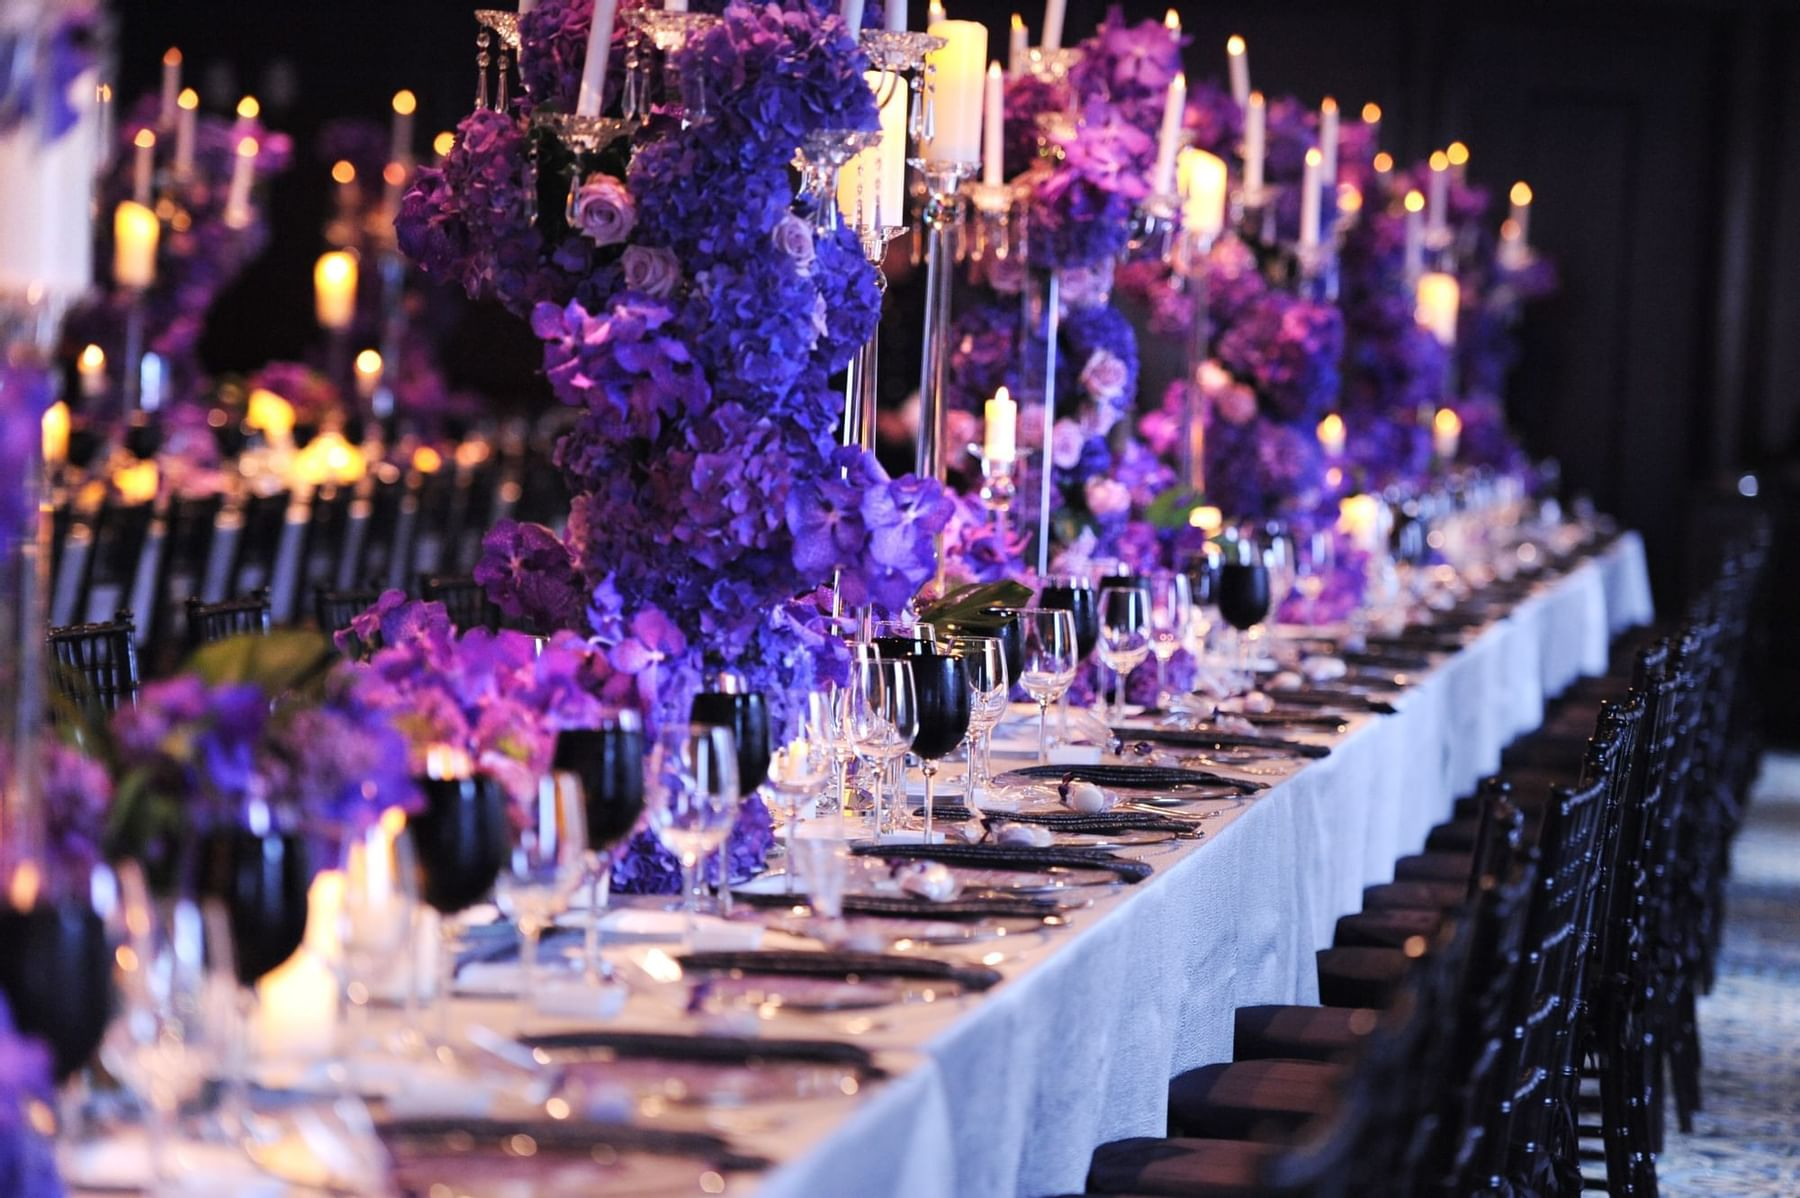 Long conference table set for fancy dining